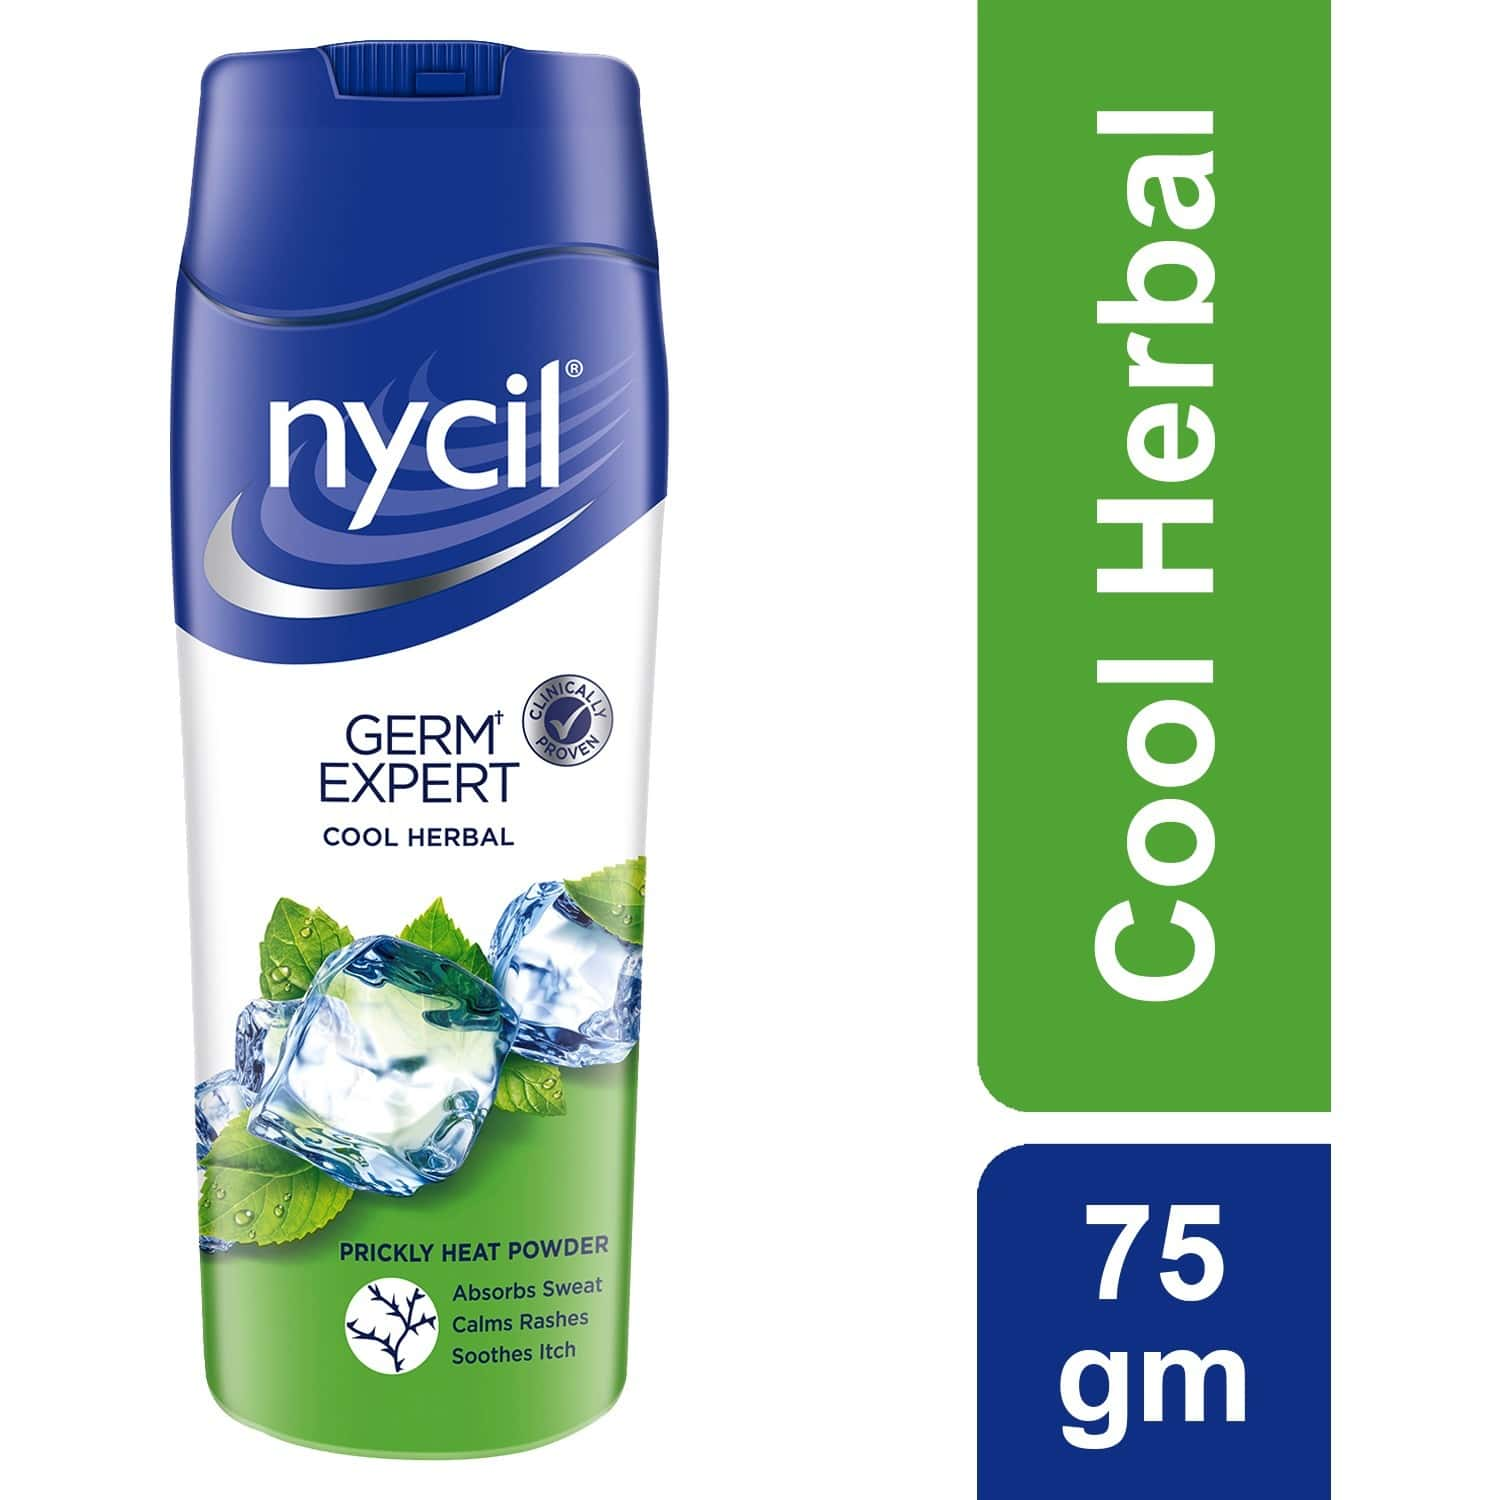 Nycil Cool Herbal Neem + Pudina Prickly Heat Powder  Bottle Of 75 G